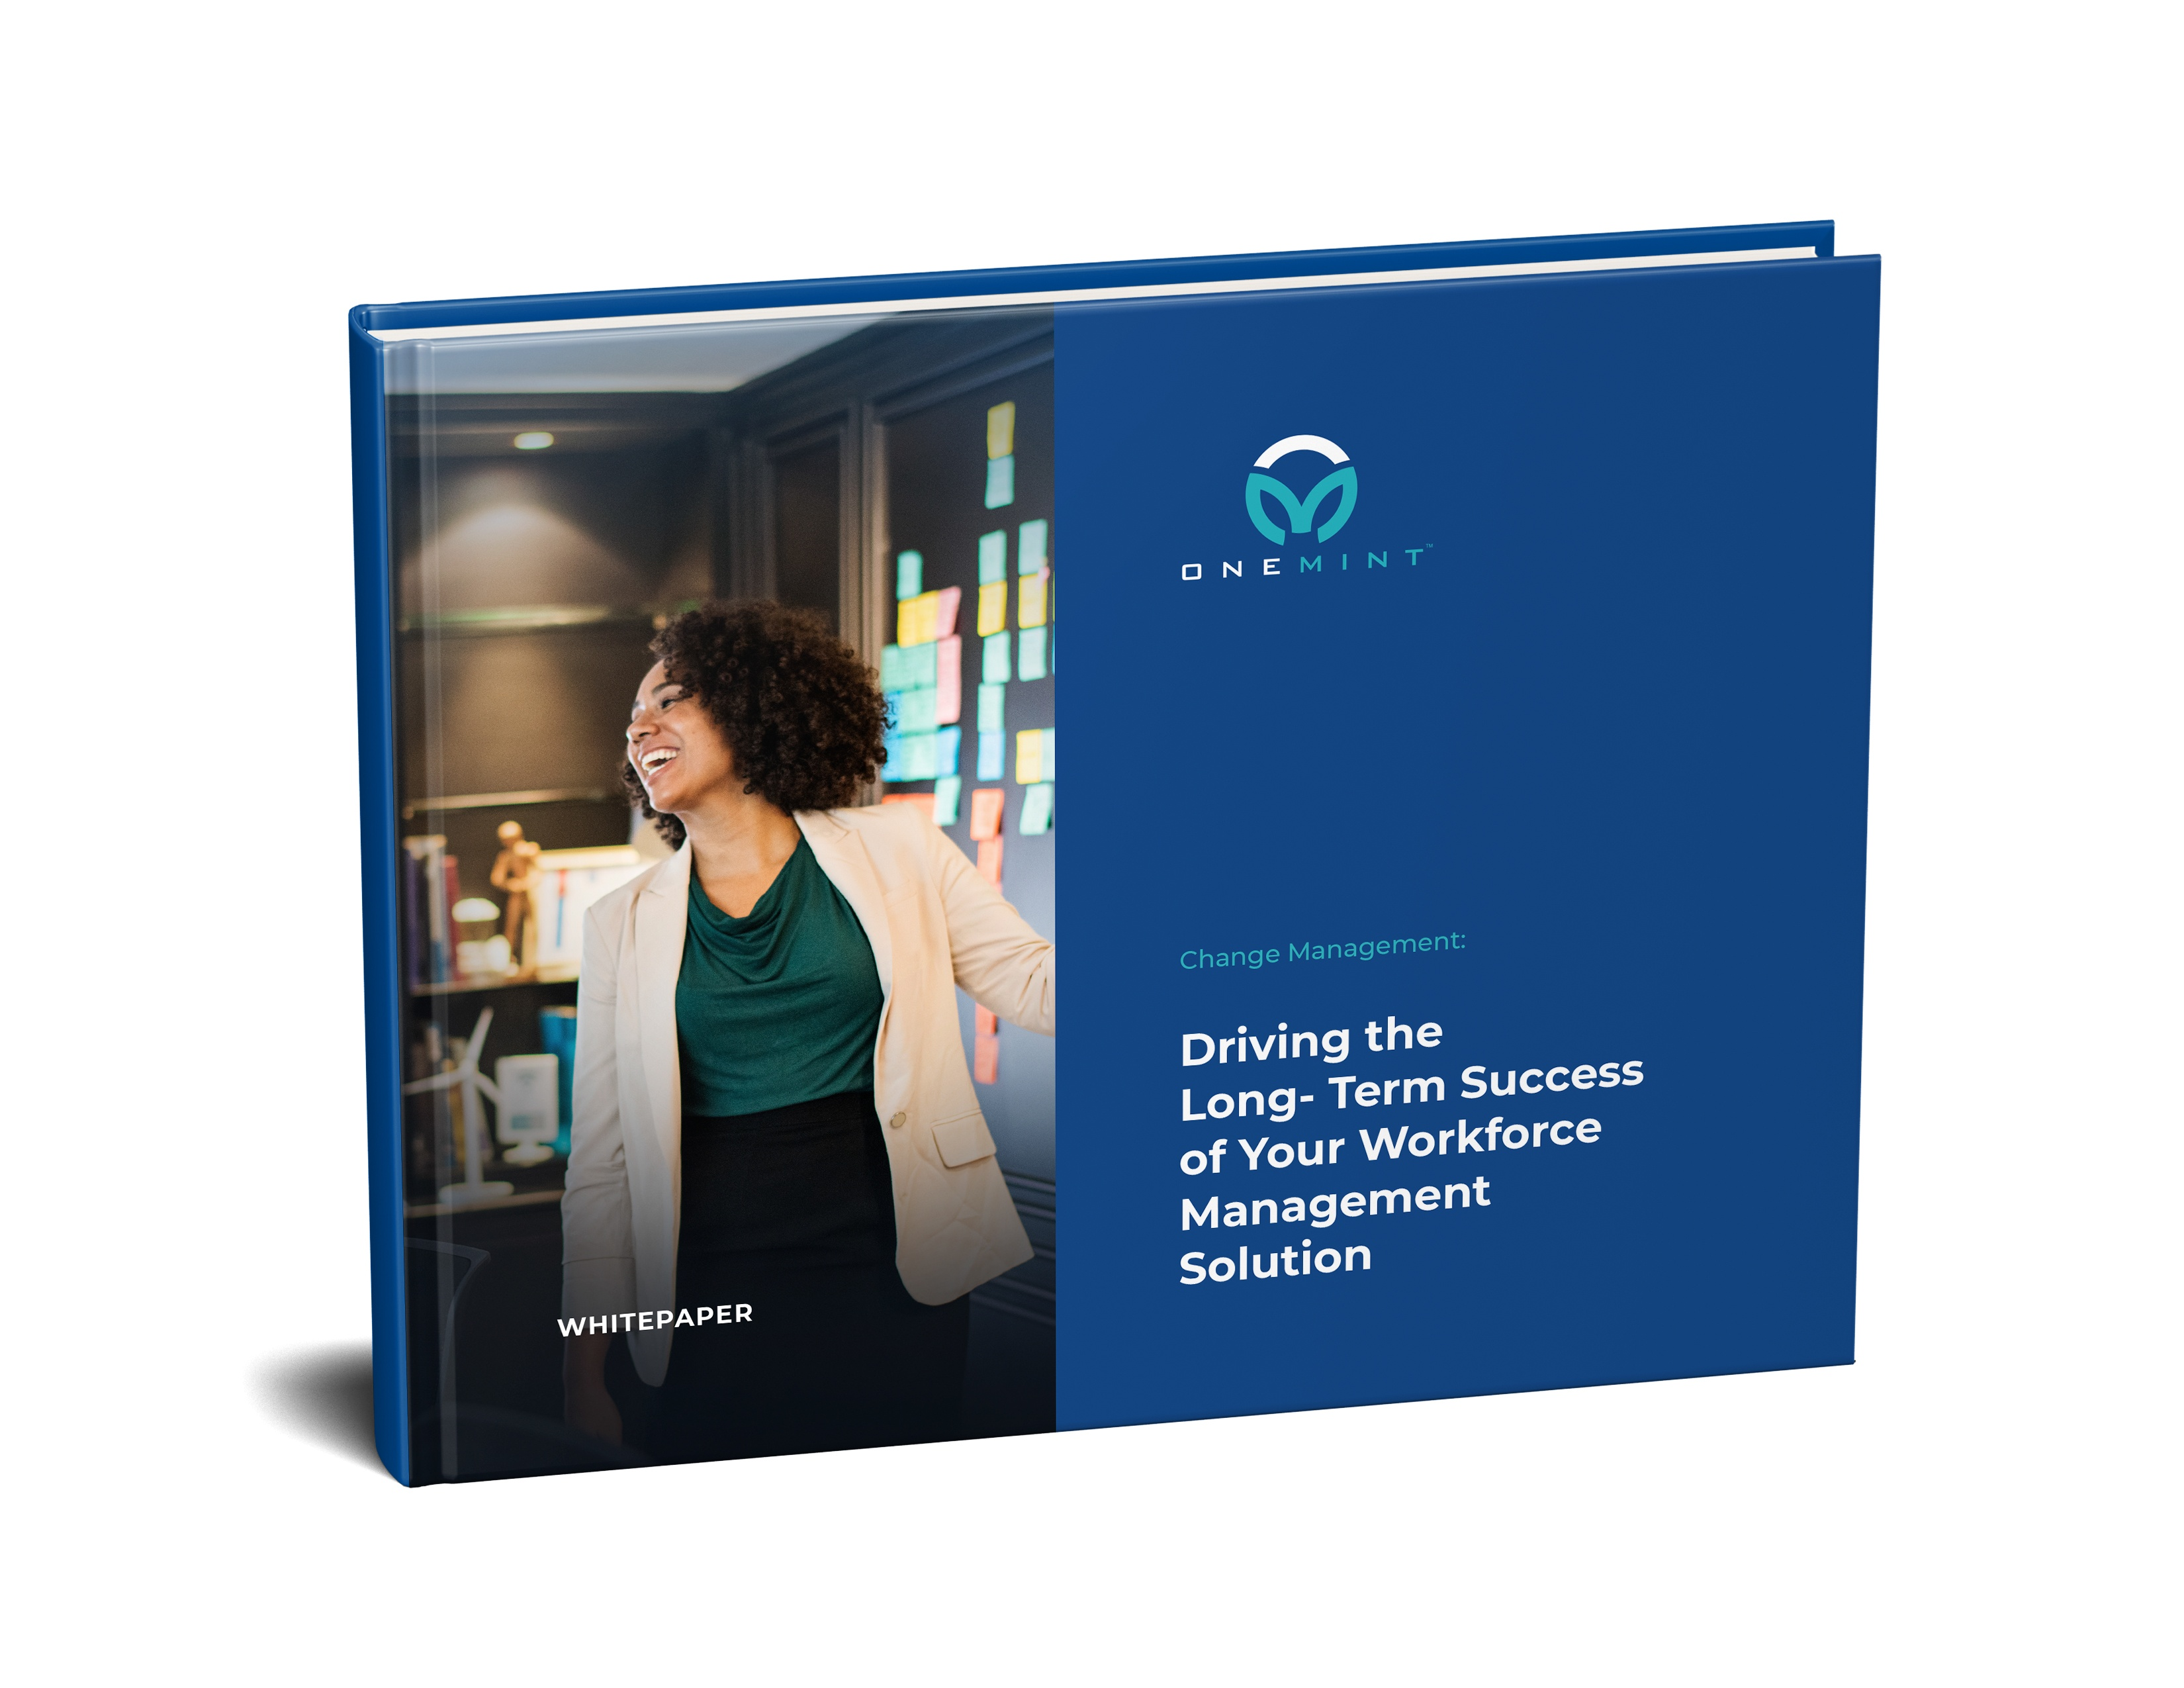 Driving Success of Your Workforce Management Solution